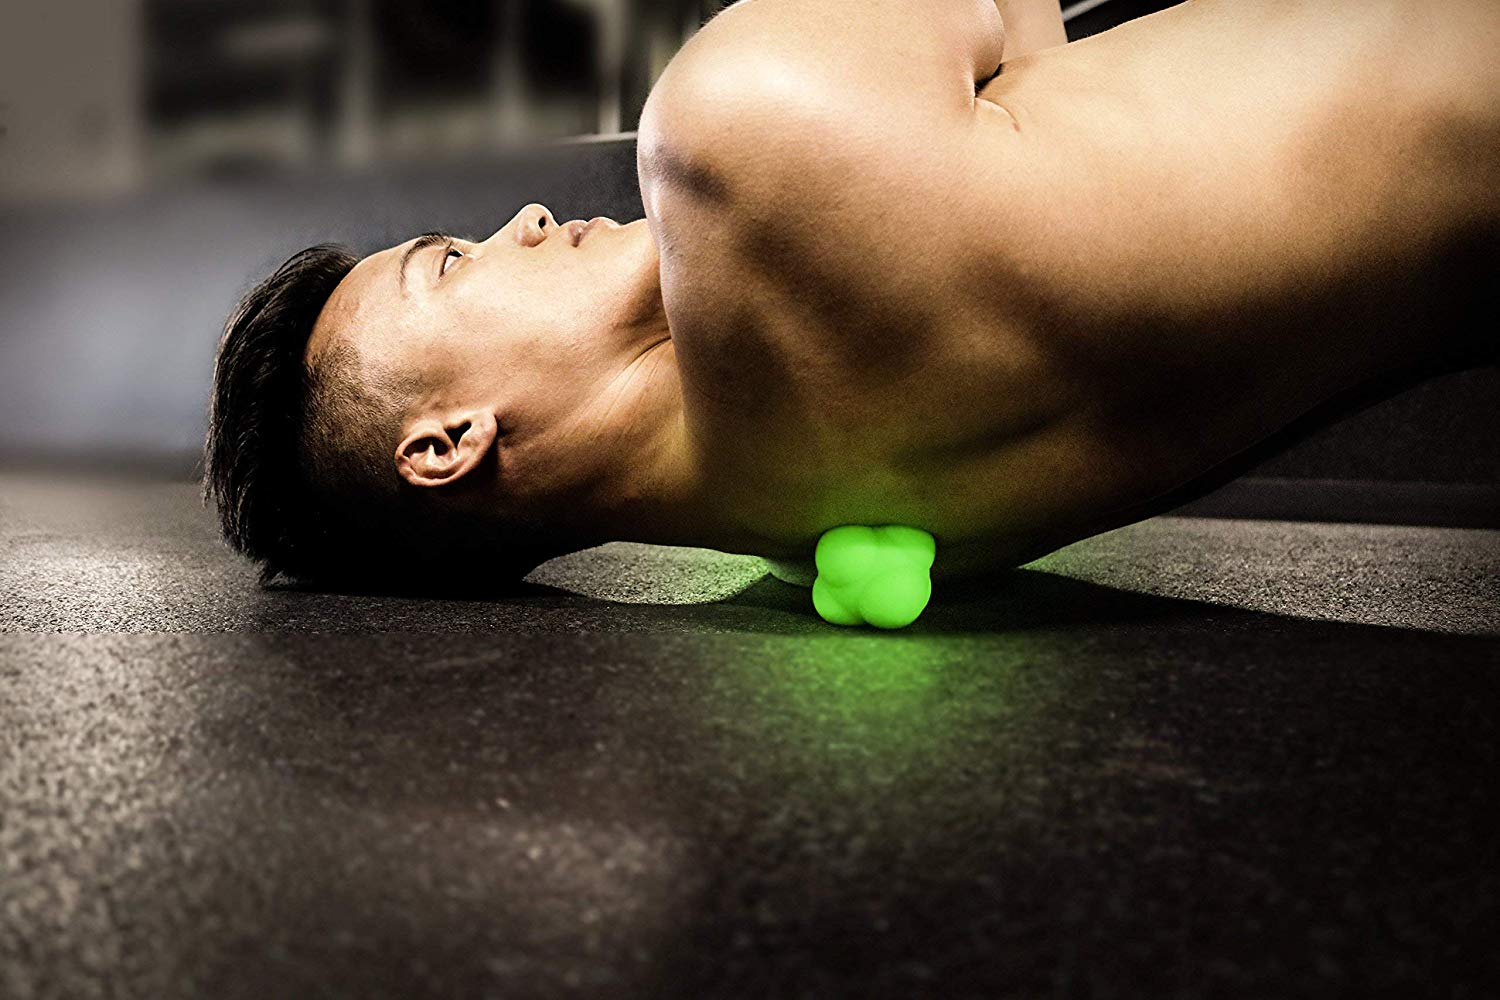 Trigger Point Therapy Massage Reaction Ball: